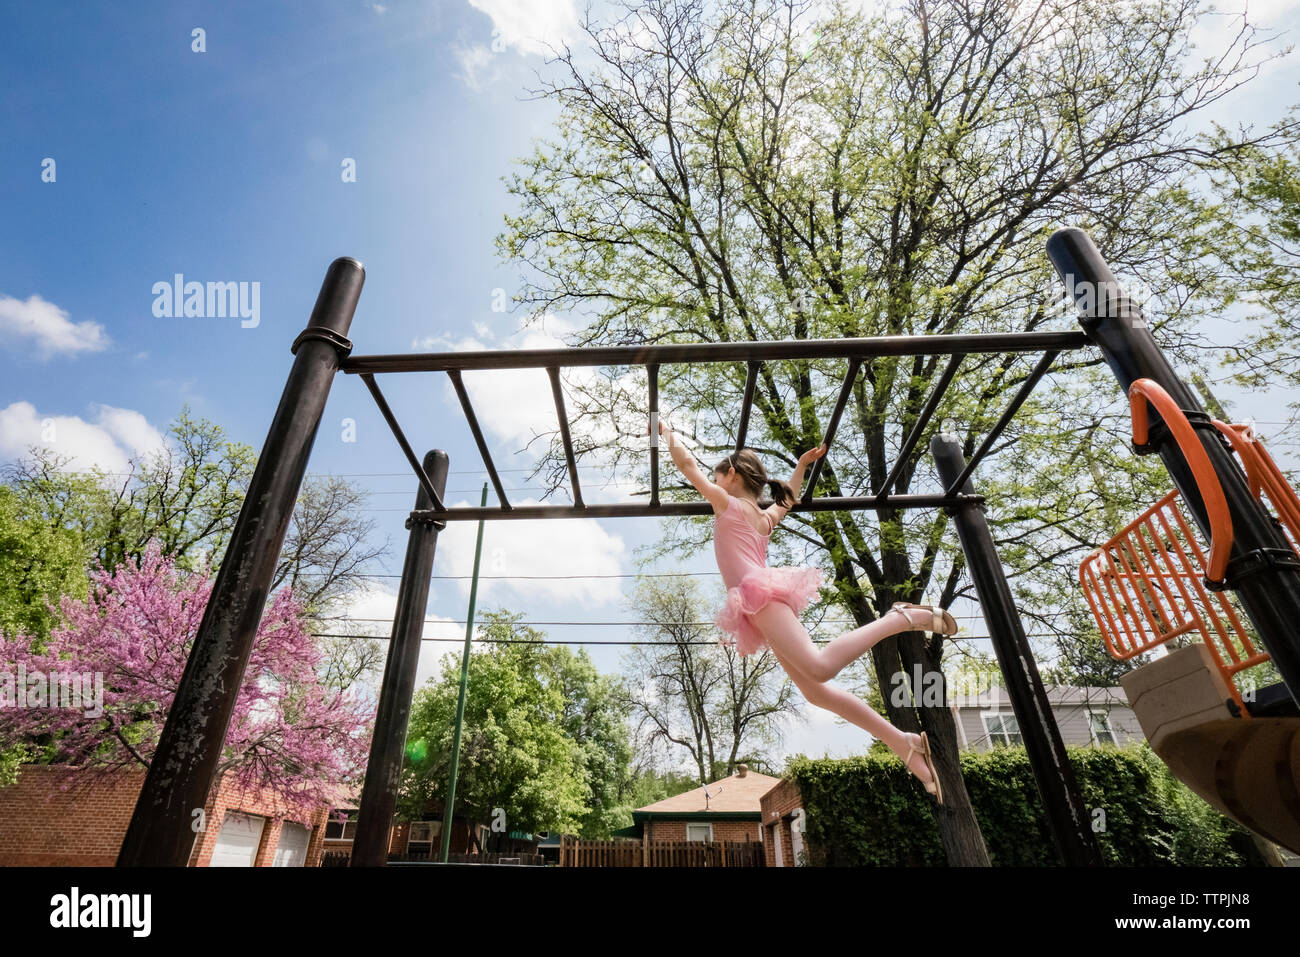 Ballet Bars Stock Photos & Ballet Bars Stock Images - Alamy